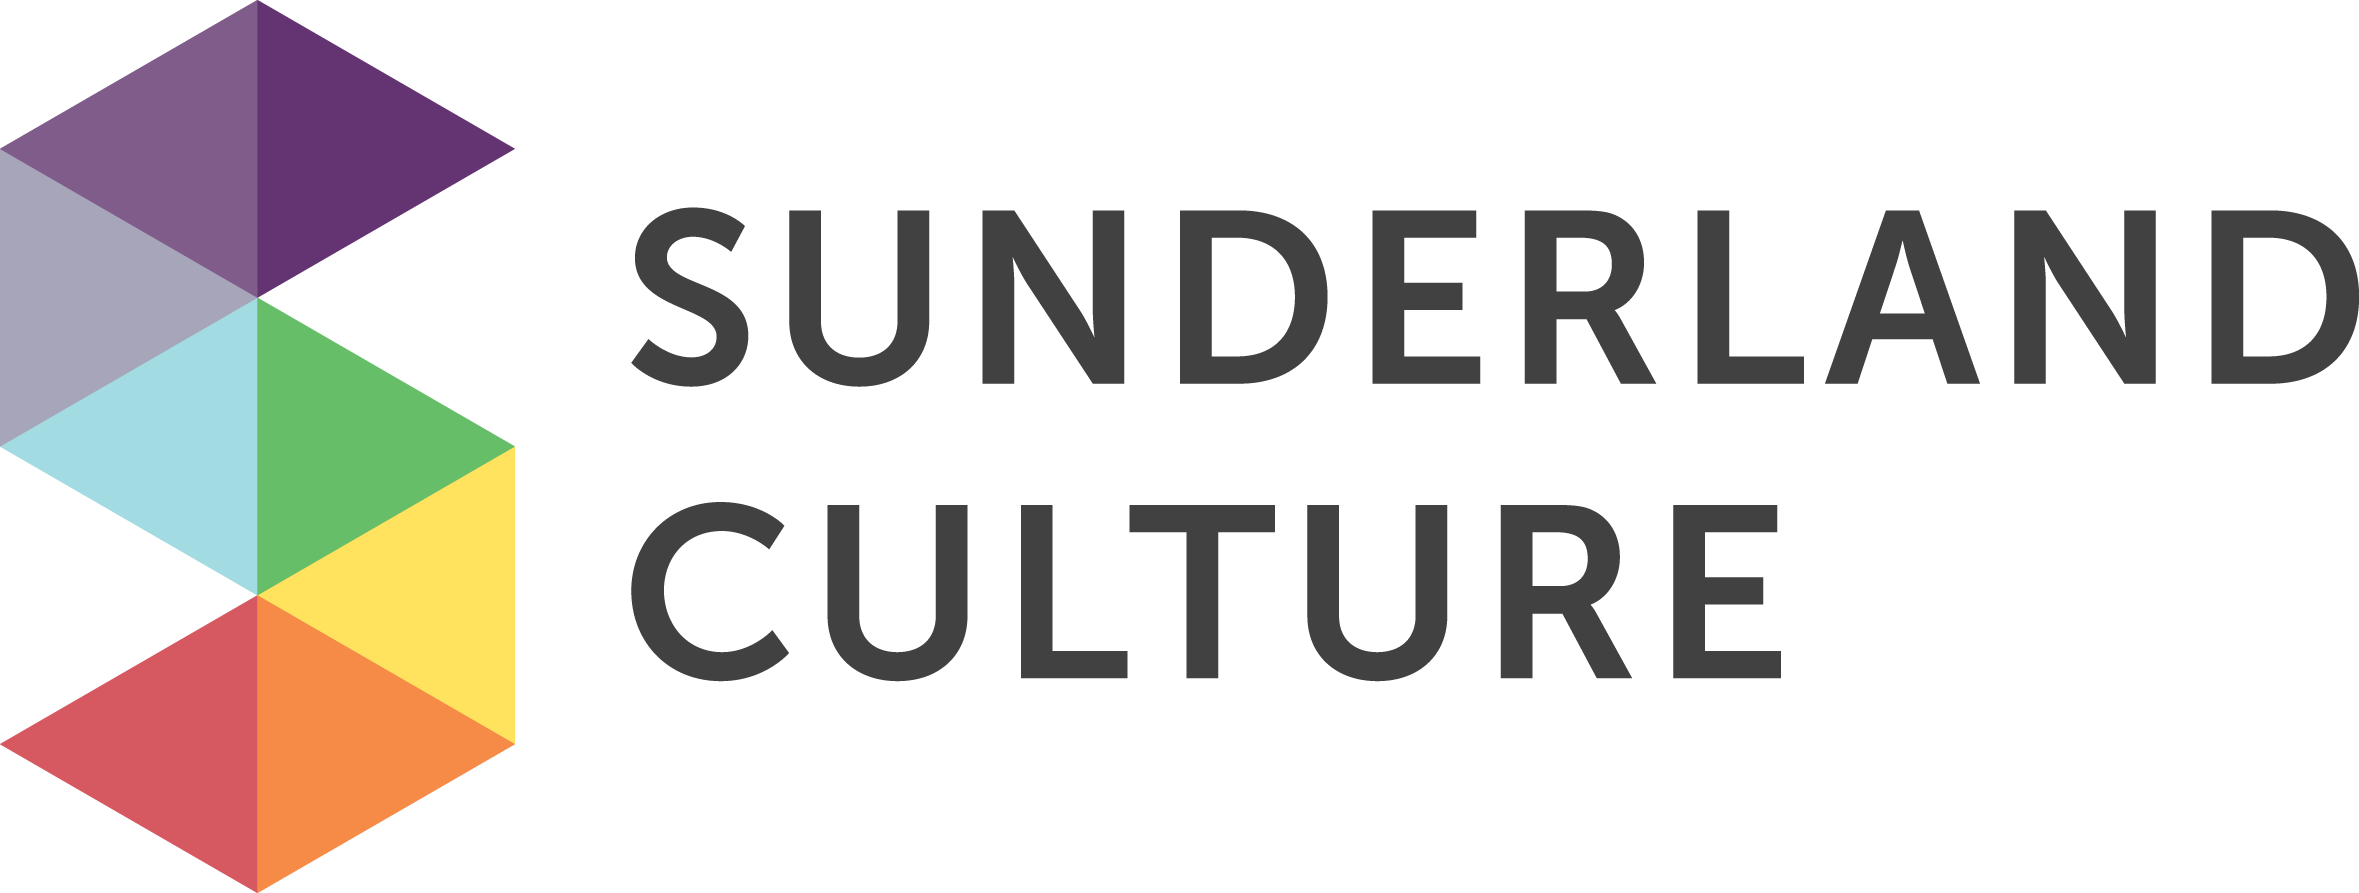 New Sunderland Culture logo